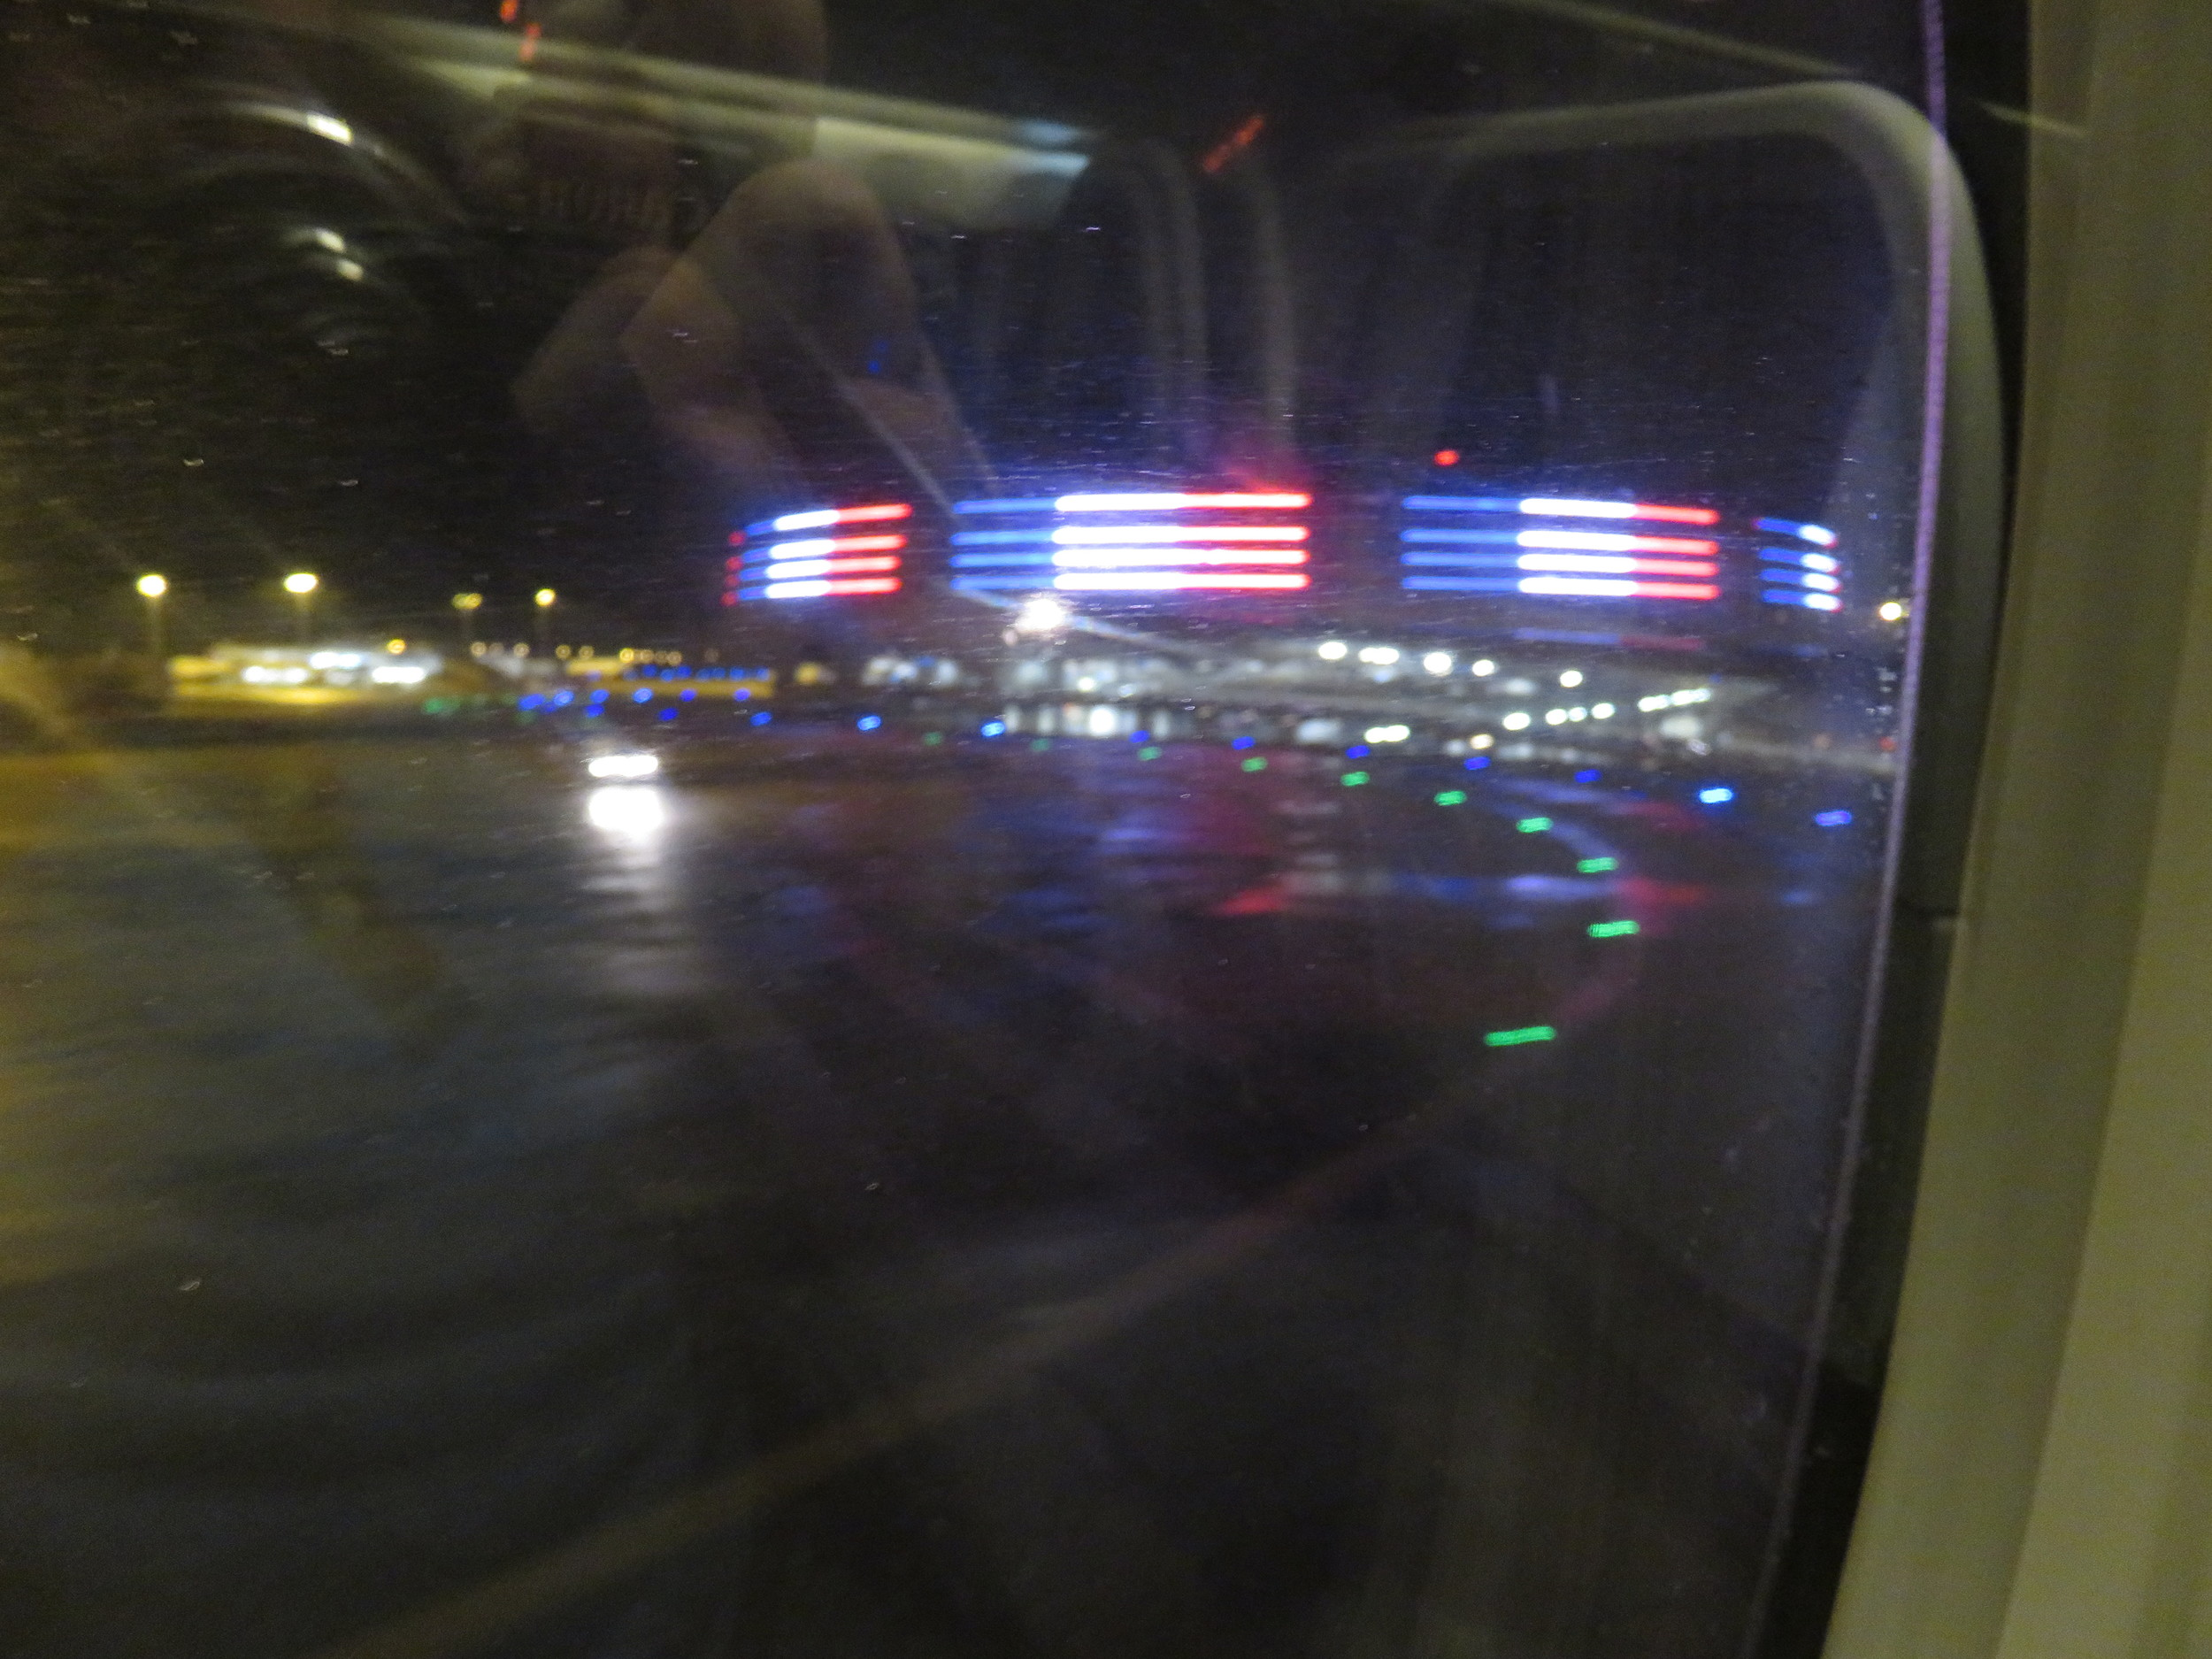 Taxing past terminal 1 at Charles De Gaulle